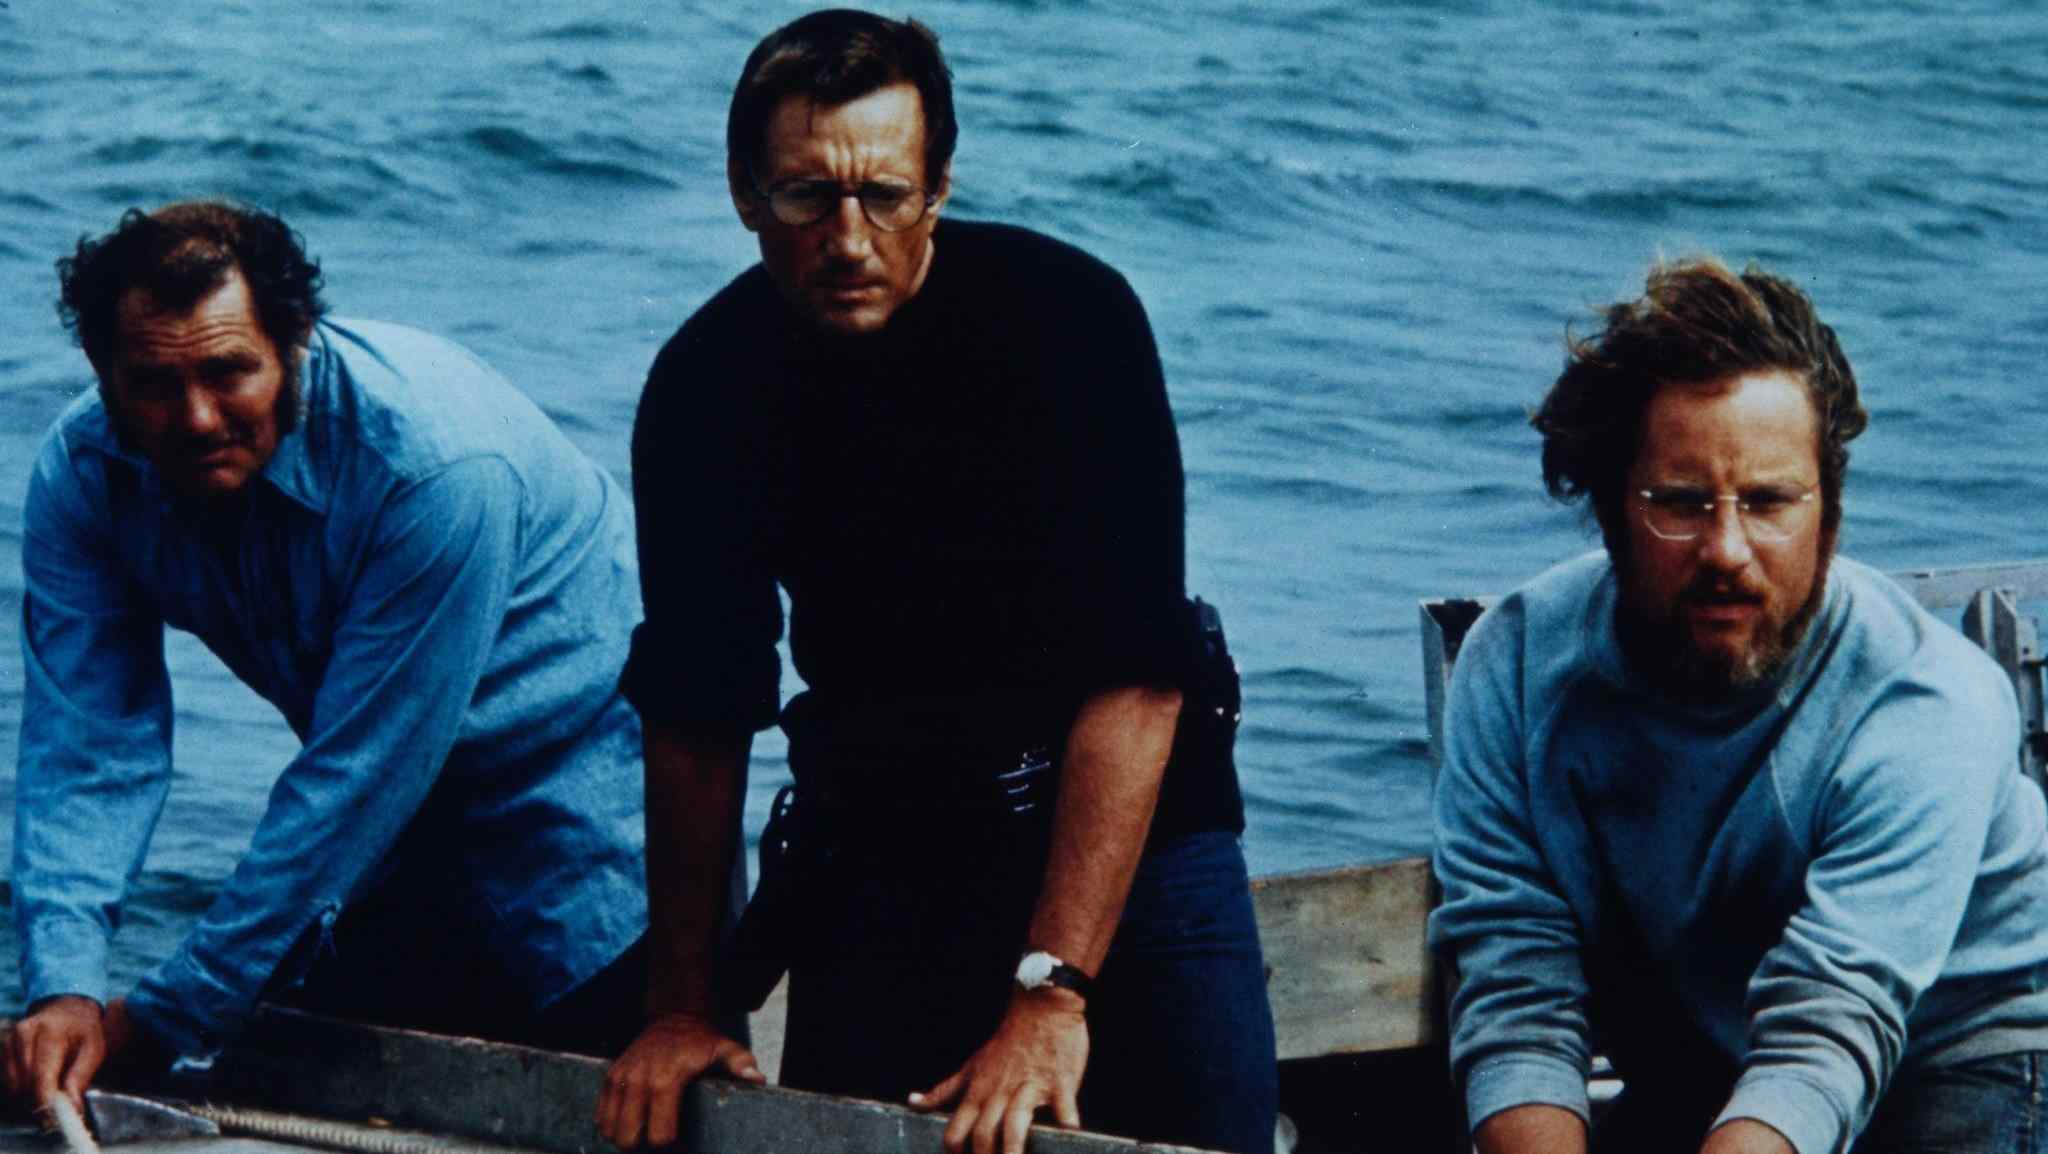 Brody (Roy Scheider) and Hooper (Richard Dreyfuss) in Steven Spielberg's Jaws.